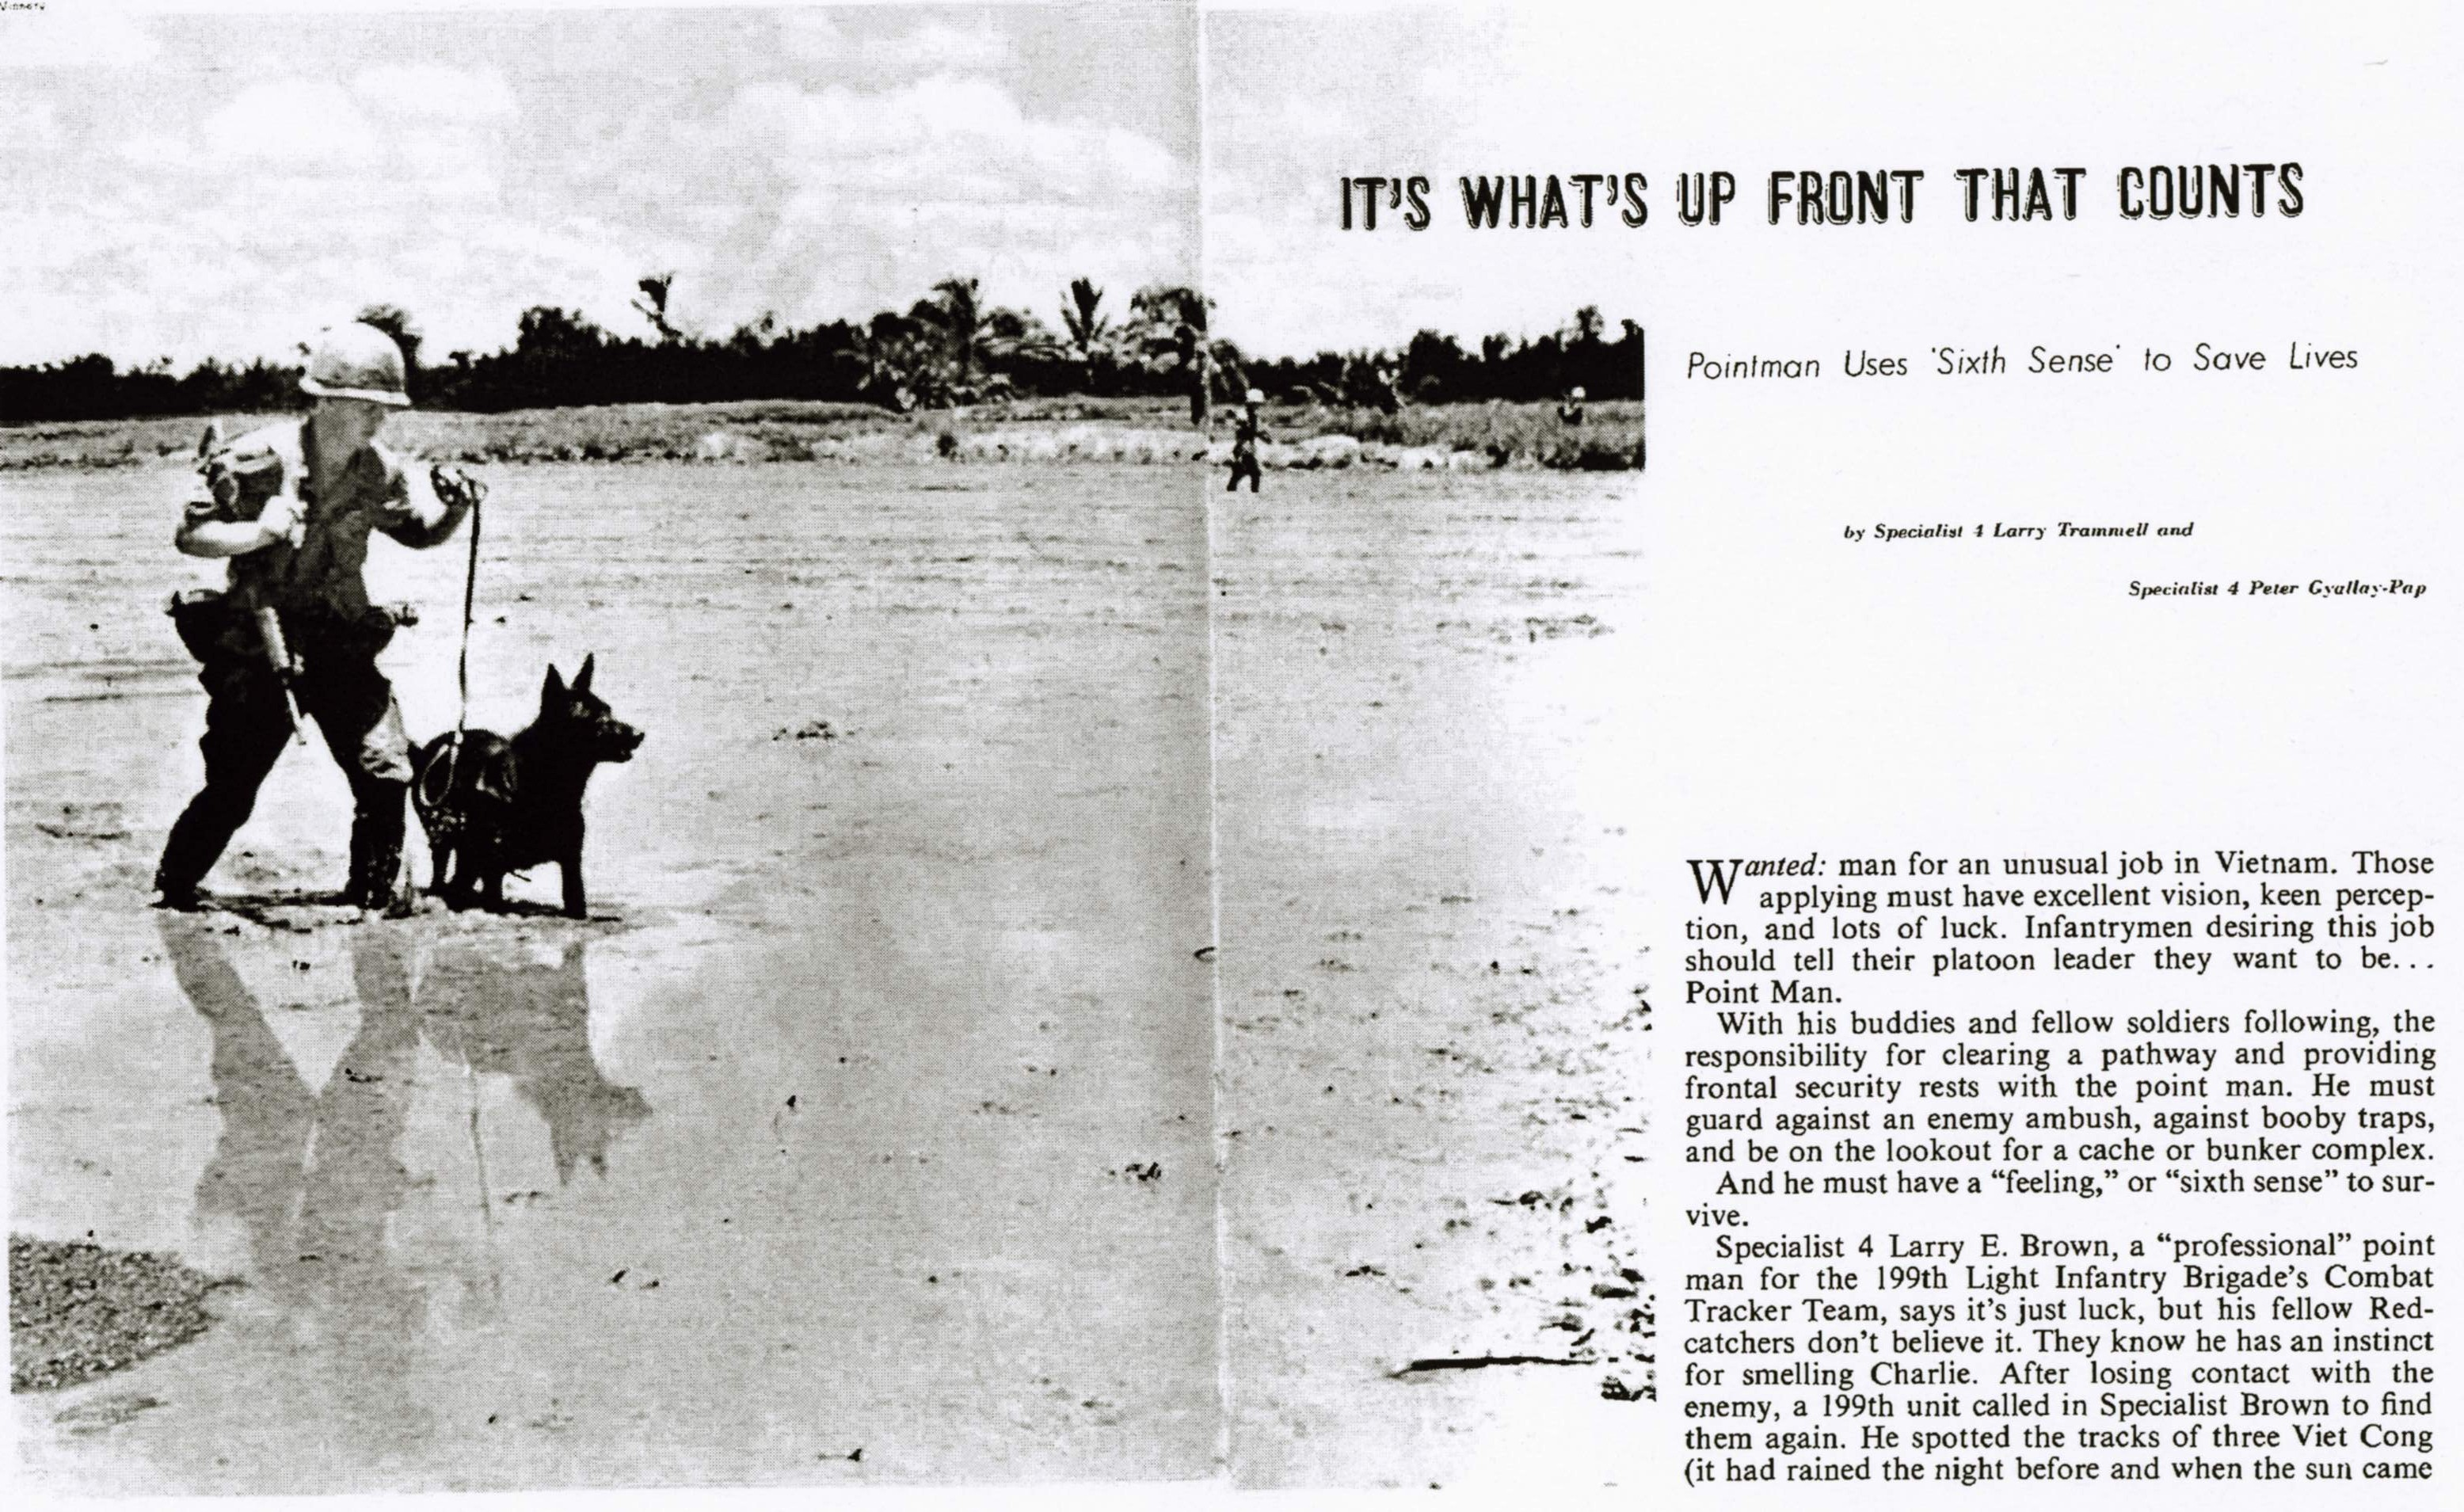 49th Scout Dog, 1968